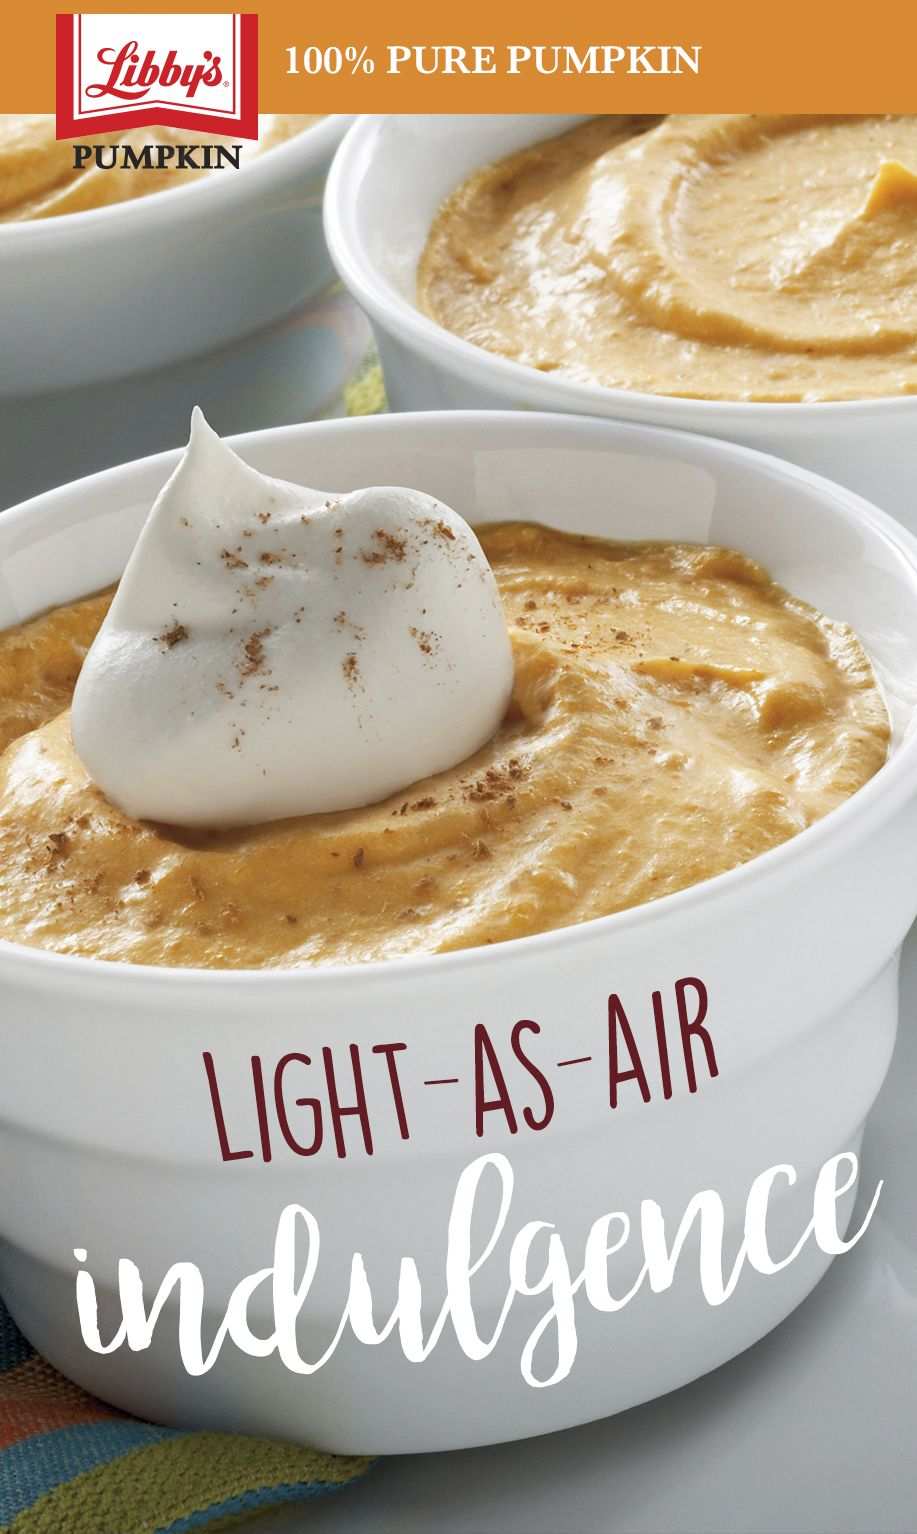 Mmmmm...Pumpkin Mousse When you want to satisfy your sweet tooth but don't want to turn on the oven, try this quick dessert. This pumpkin mousse recipe is a no-bake favorite, made with Libby's® 100% Pure Pumpkin for a big burst of pumpkin flavor.